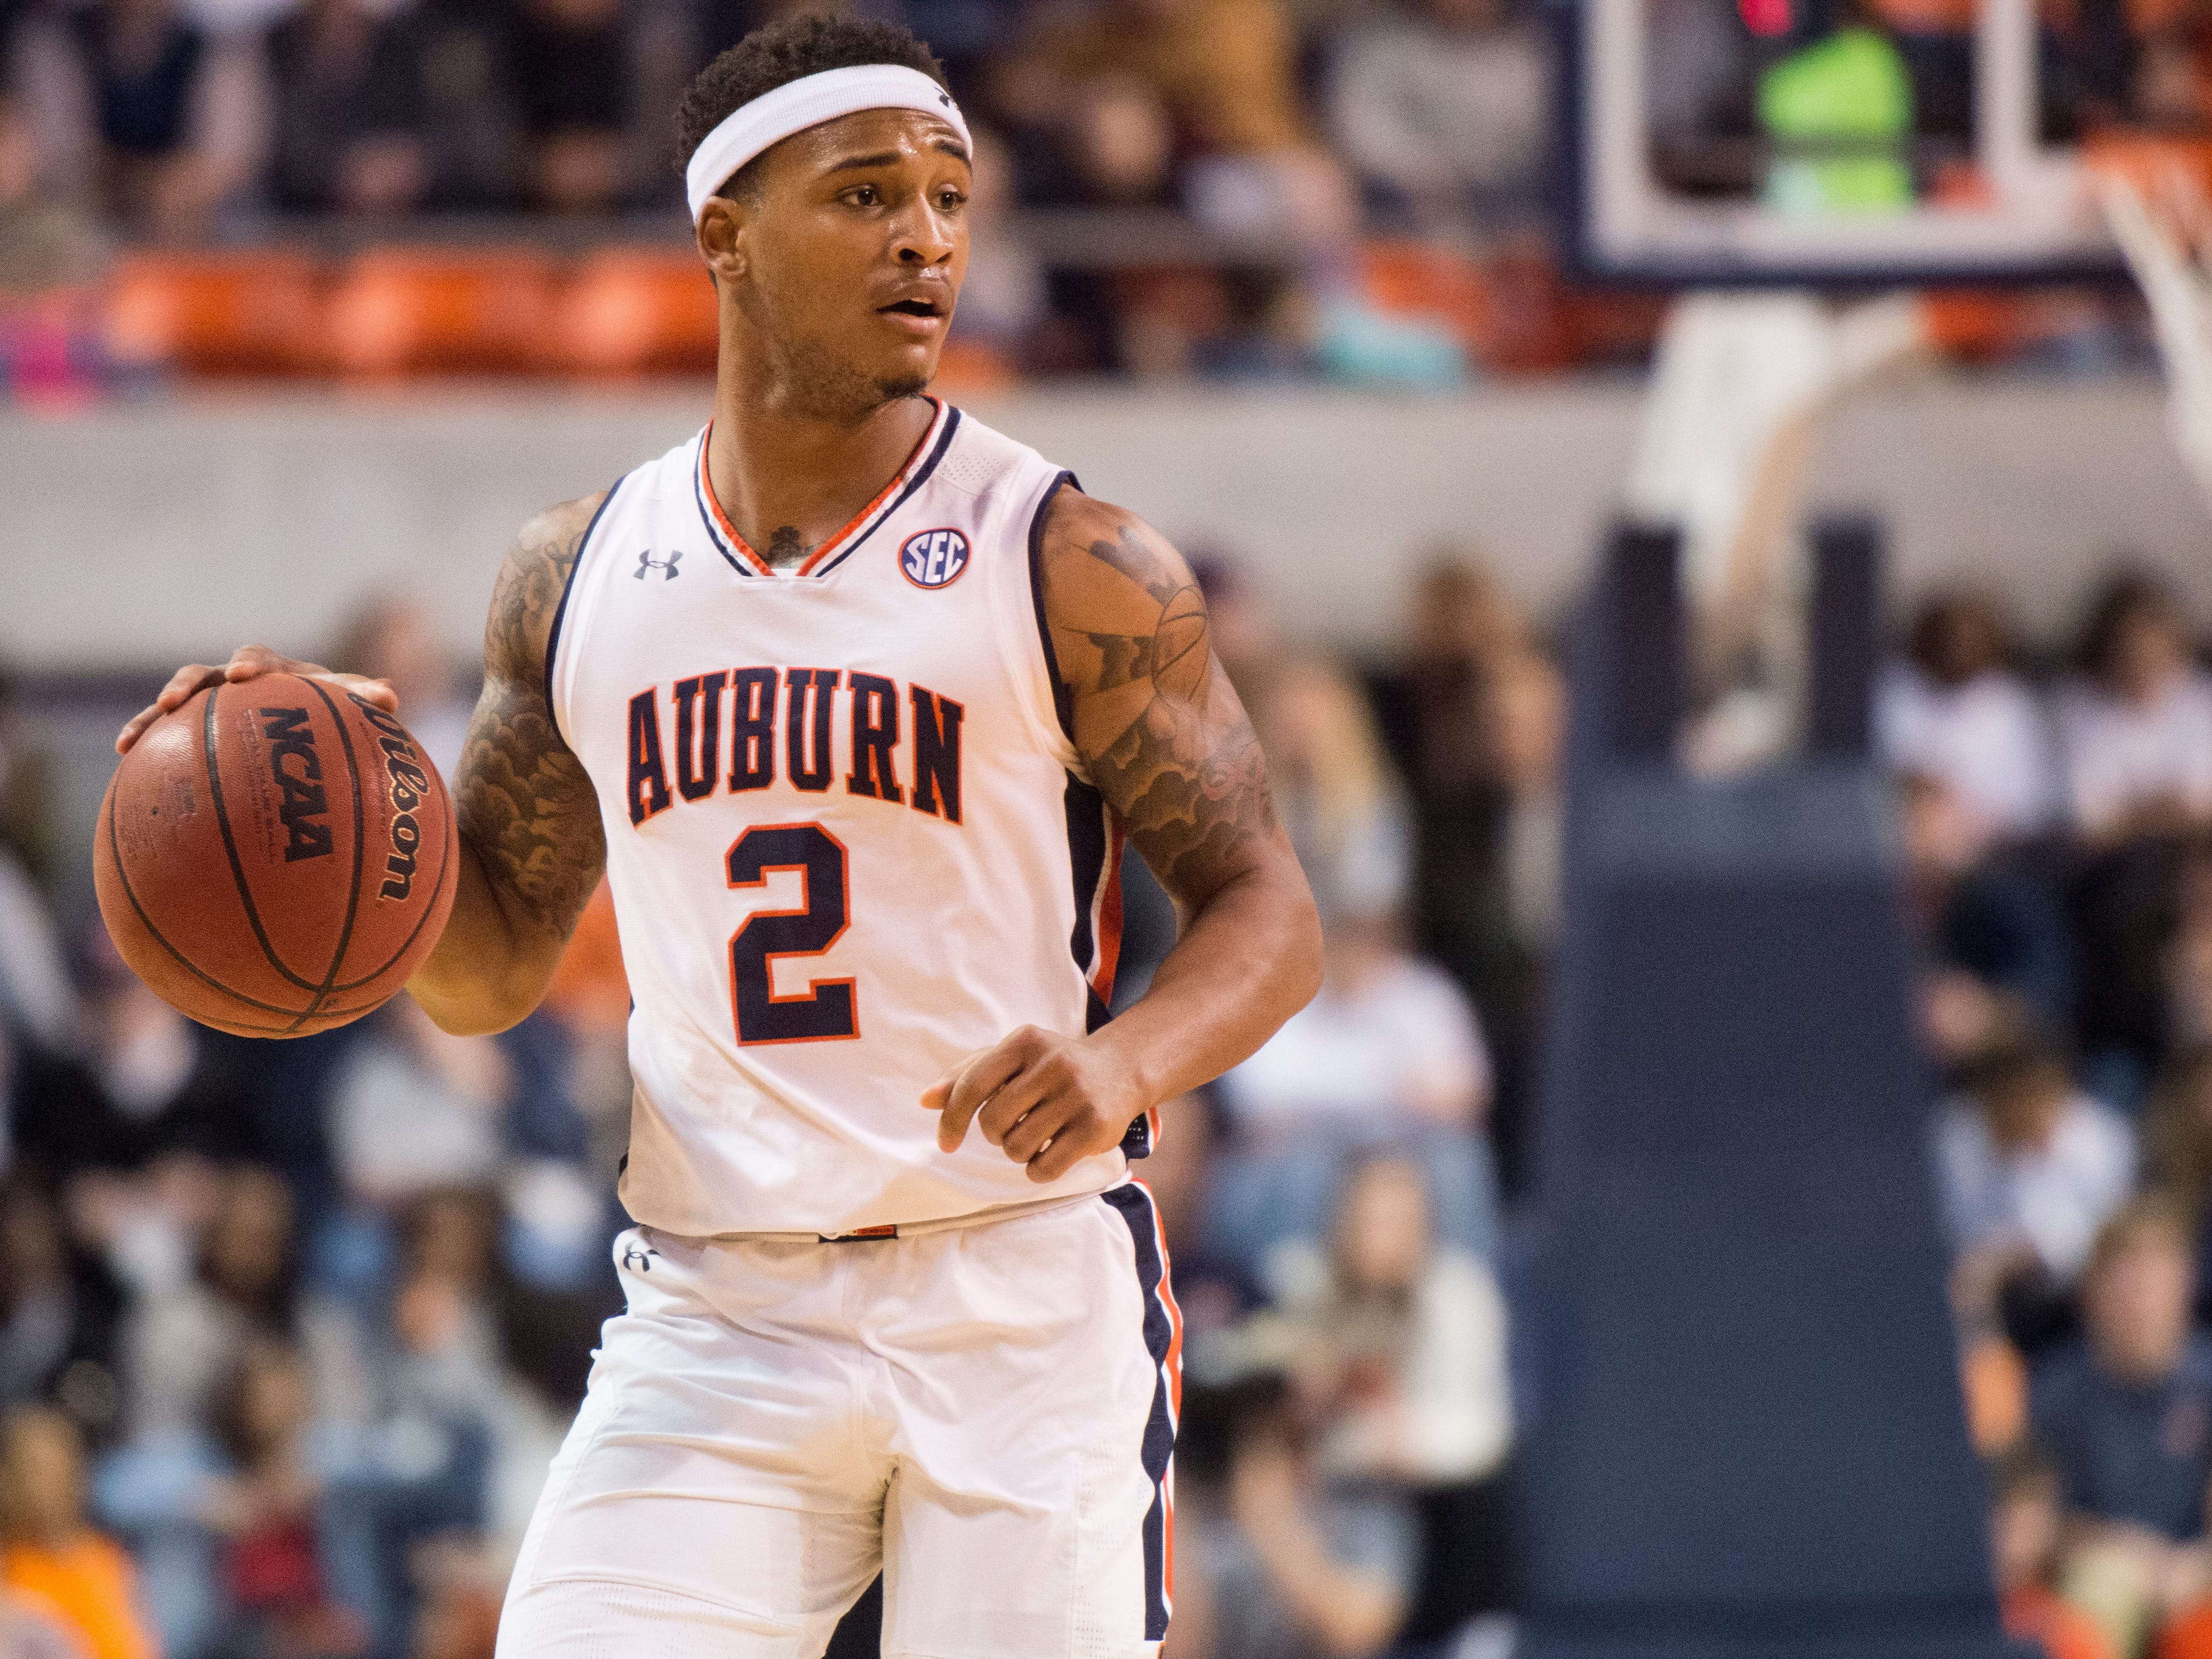 Auburn guard Bryce Brown (2) dribbles the ball down the court at Auburn Arena in Auburn, Ala., on Wednesday, Nov. 28, 2018. Auburn defeated Saint Peter's 99-49.